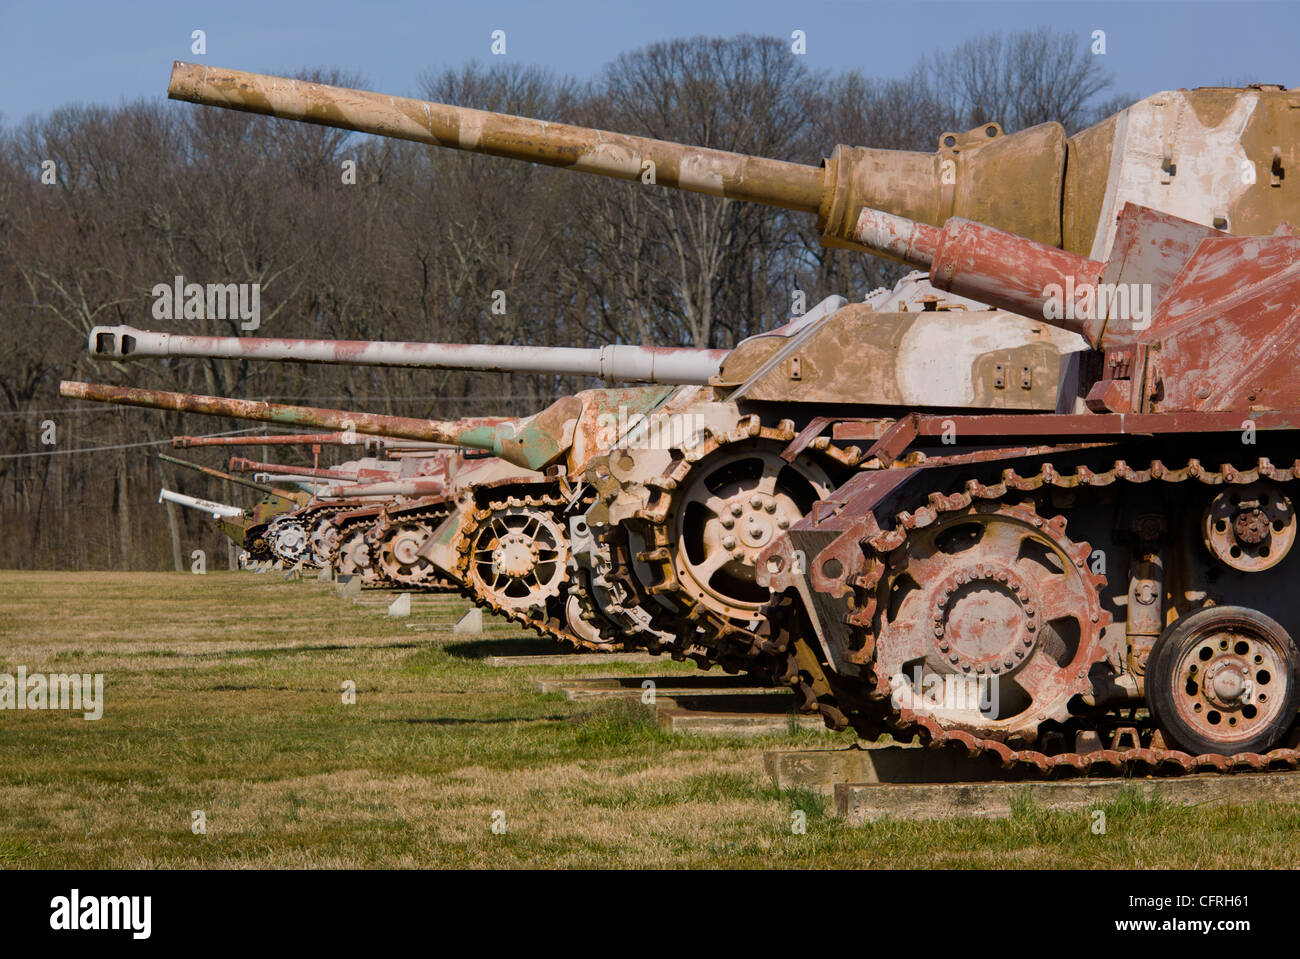 Field of rusting tanks remain at the former US Army Ordnance Museum, Aberdeen Proving Grounds, Aberdeen, Maryland - Stock Image